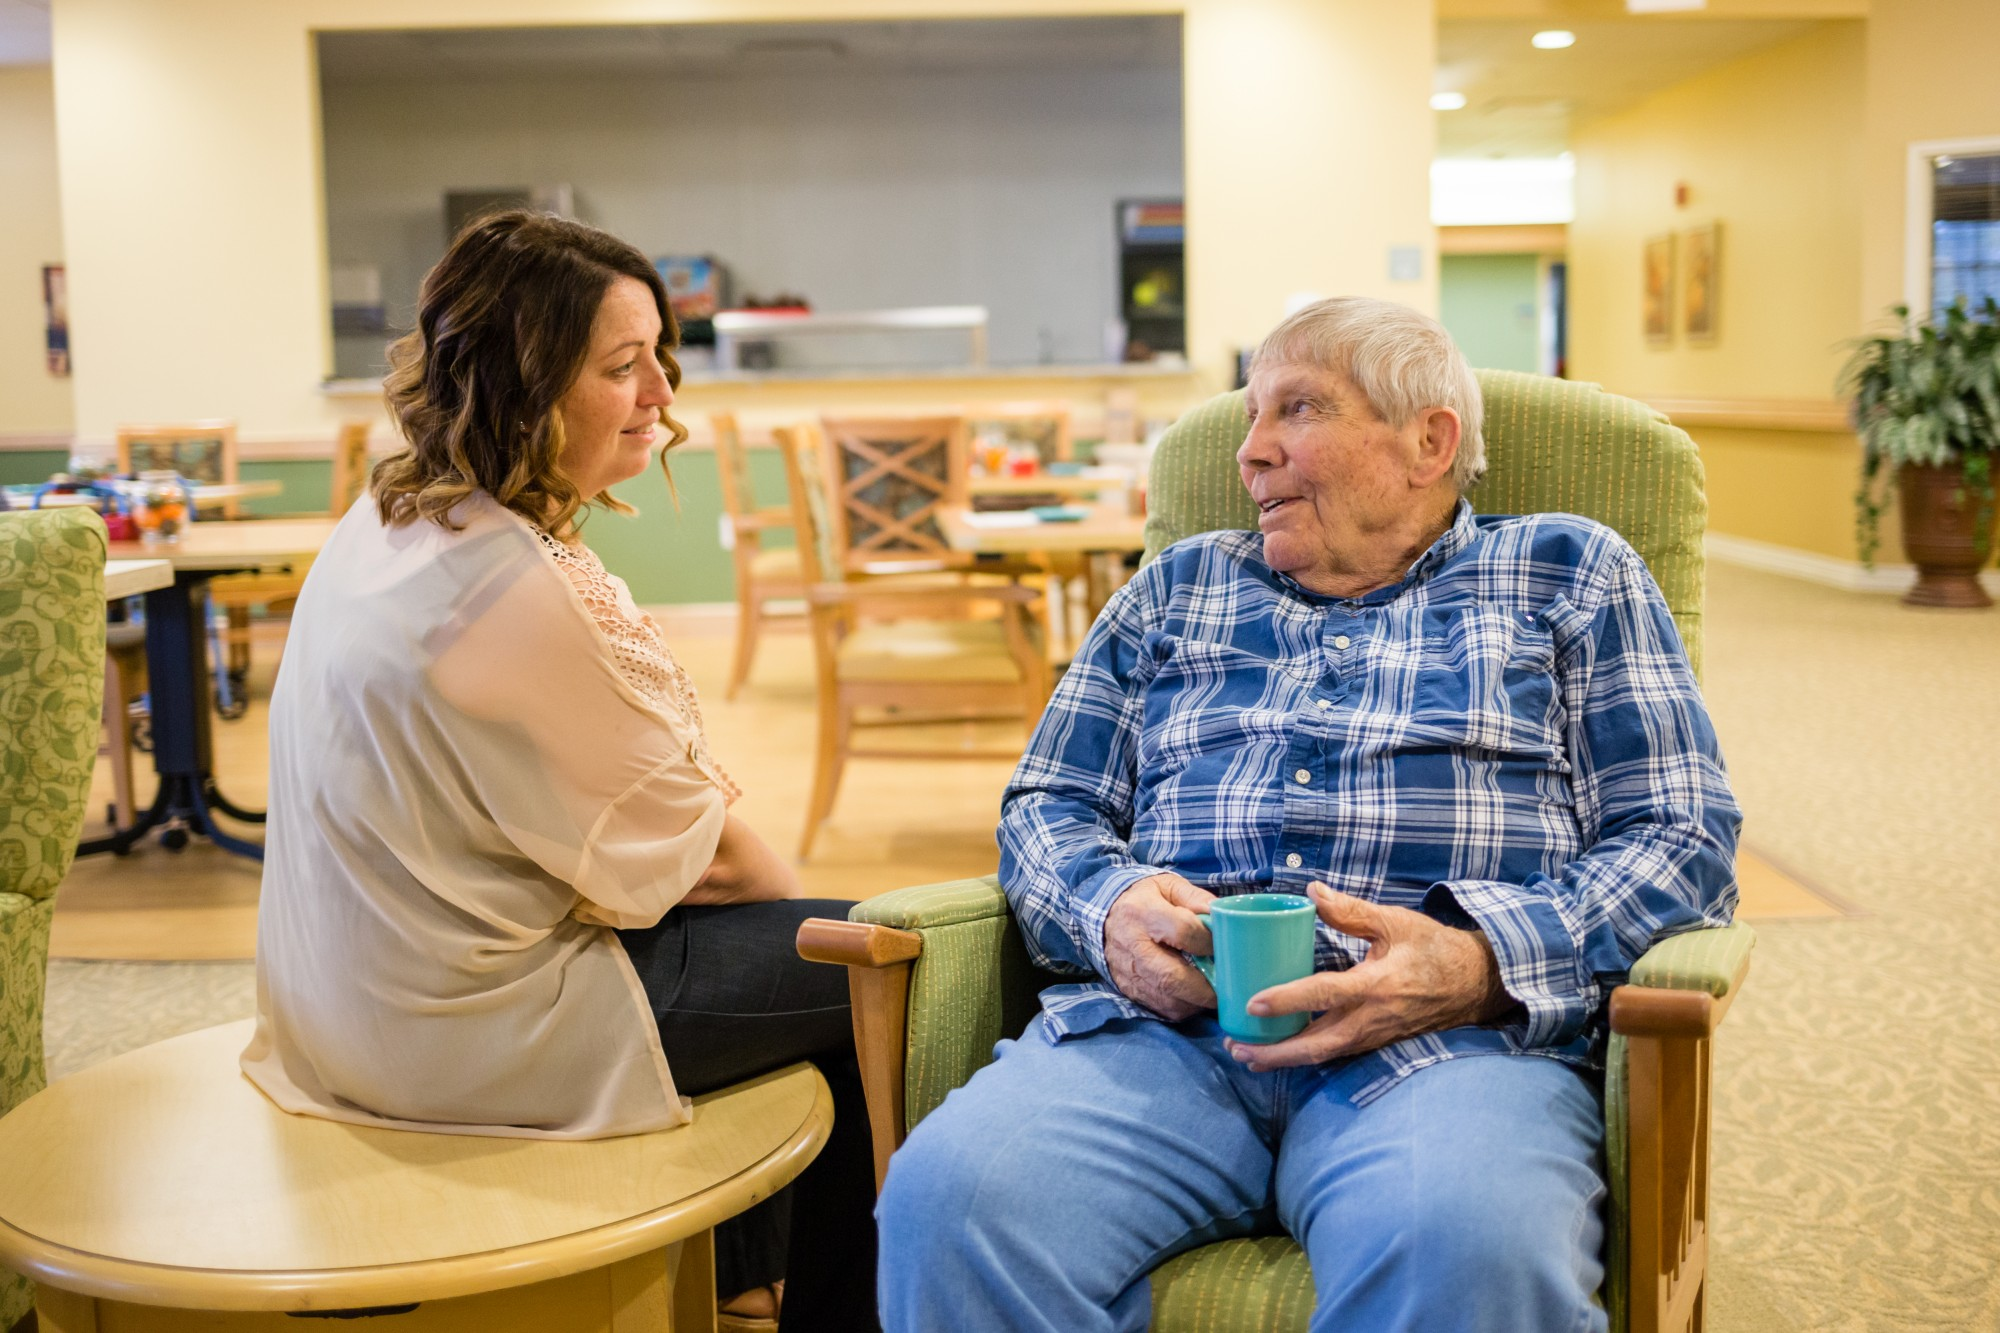 2 Entry-Level Positions That Pay for Your Resume Building